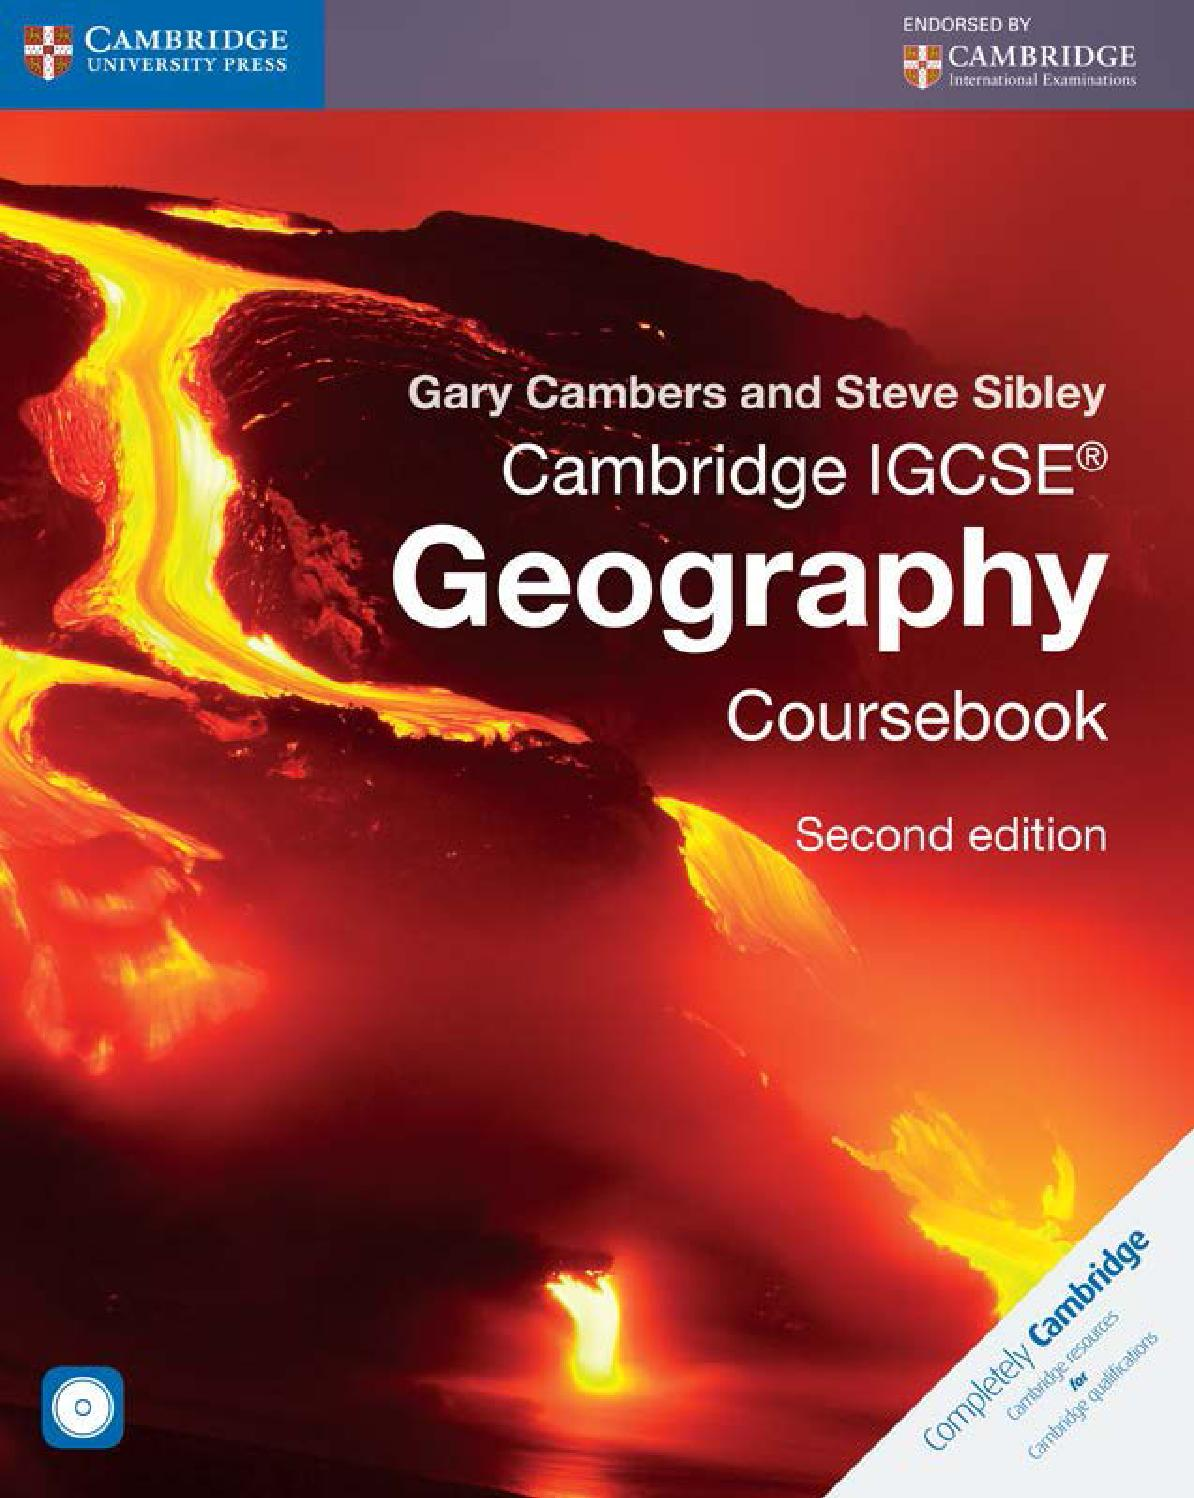 Preview Cambridge IGCSE® Geography Coursebook Second Edition